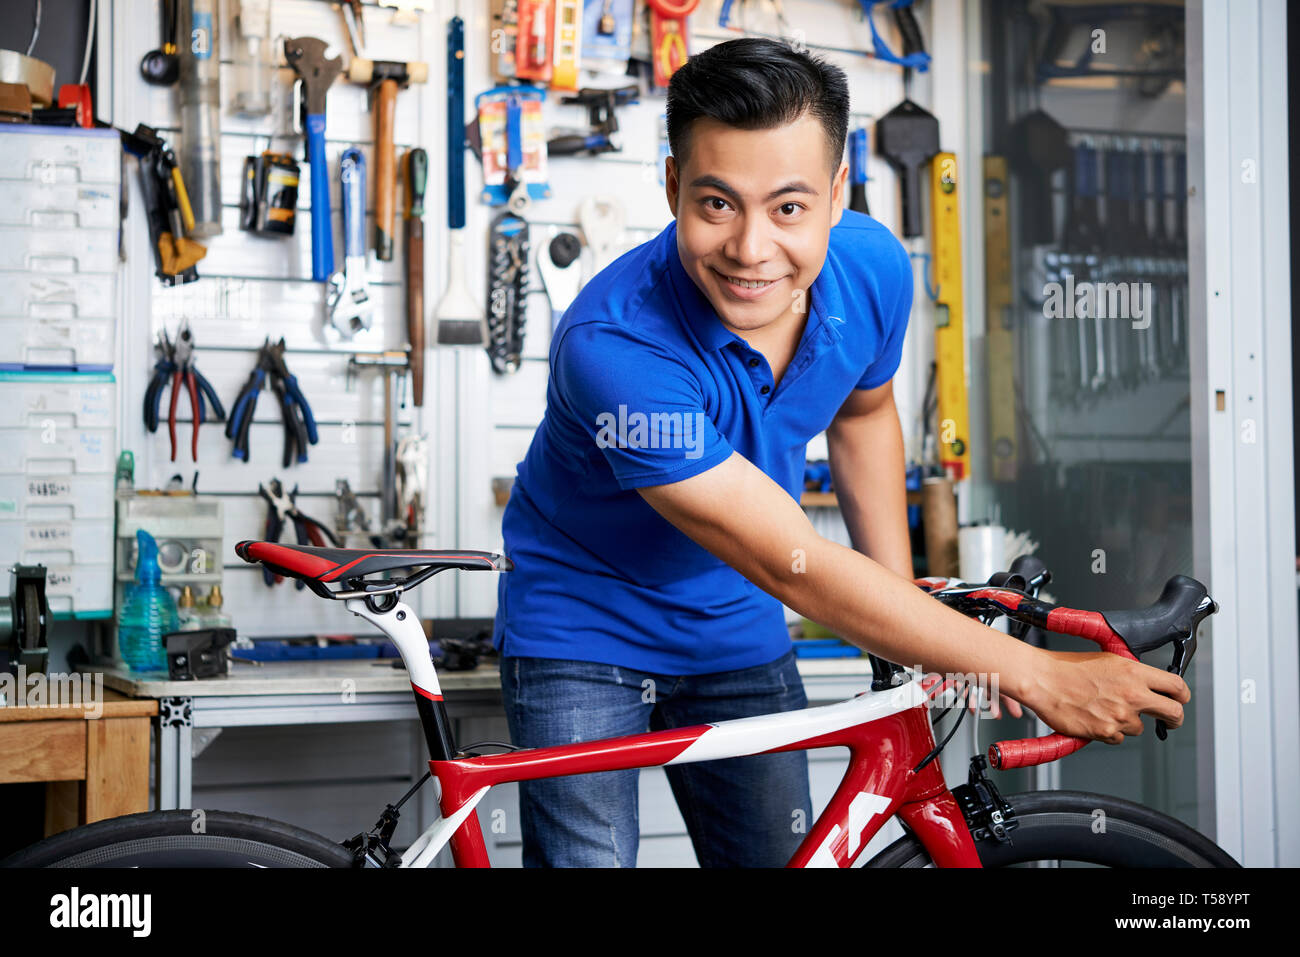 Mechanic with bicycle in workshop - Stock Image